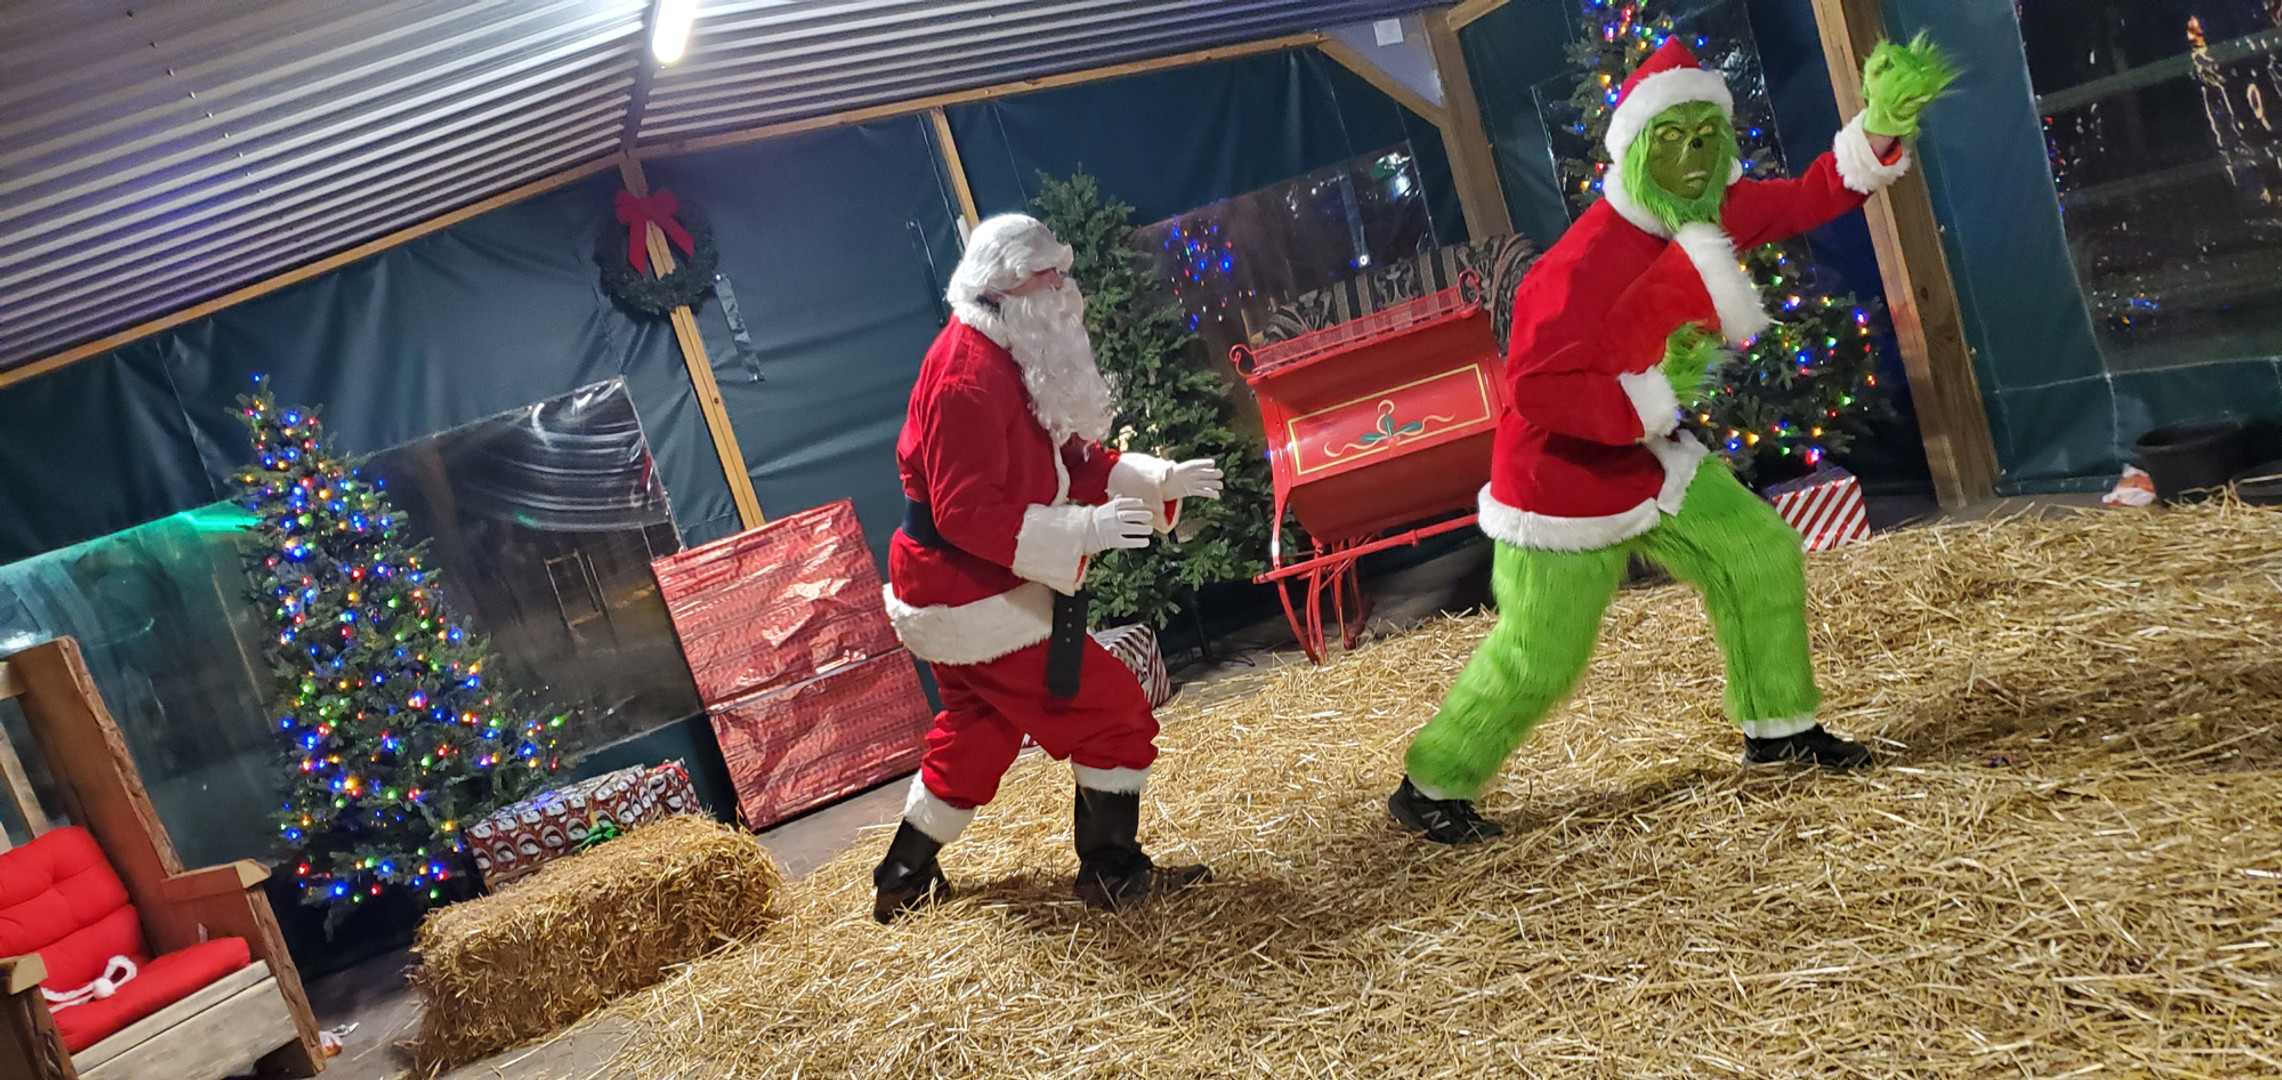 Santa chases the Grinch